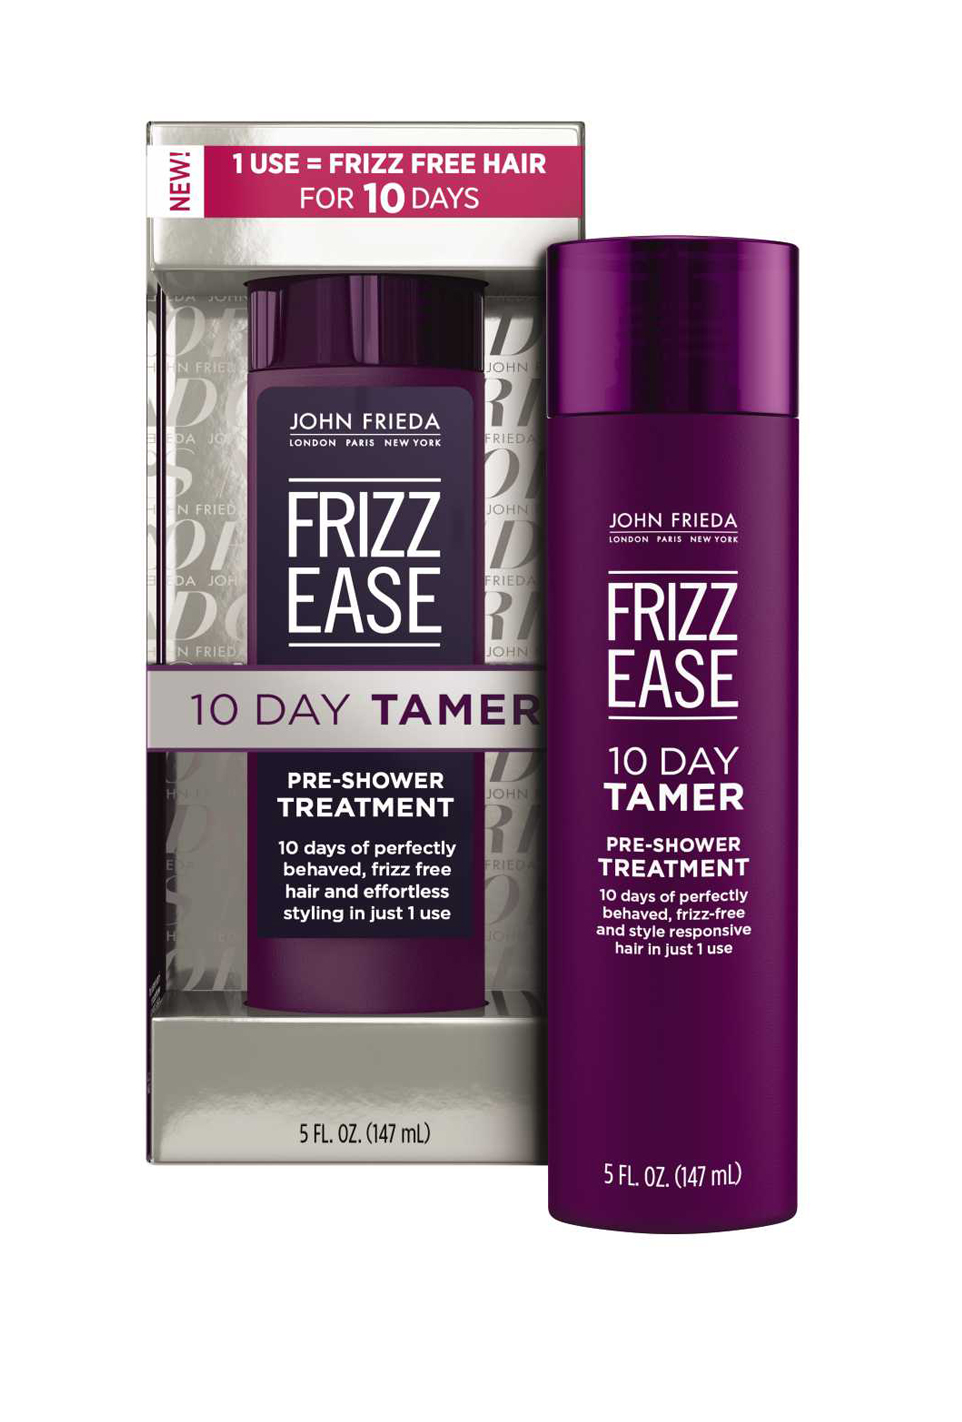 BEST TREATMENT FOR FRIZZY HAIR